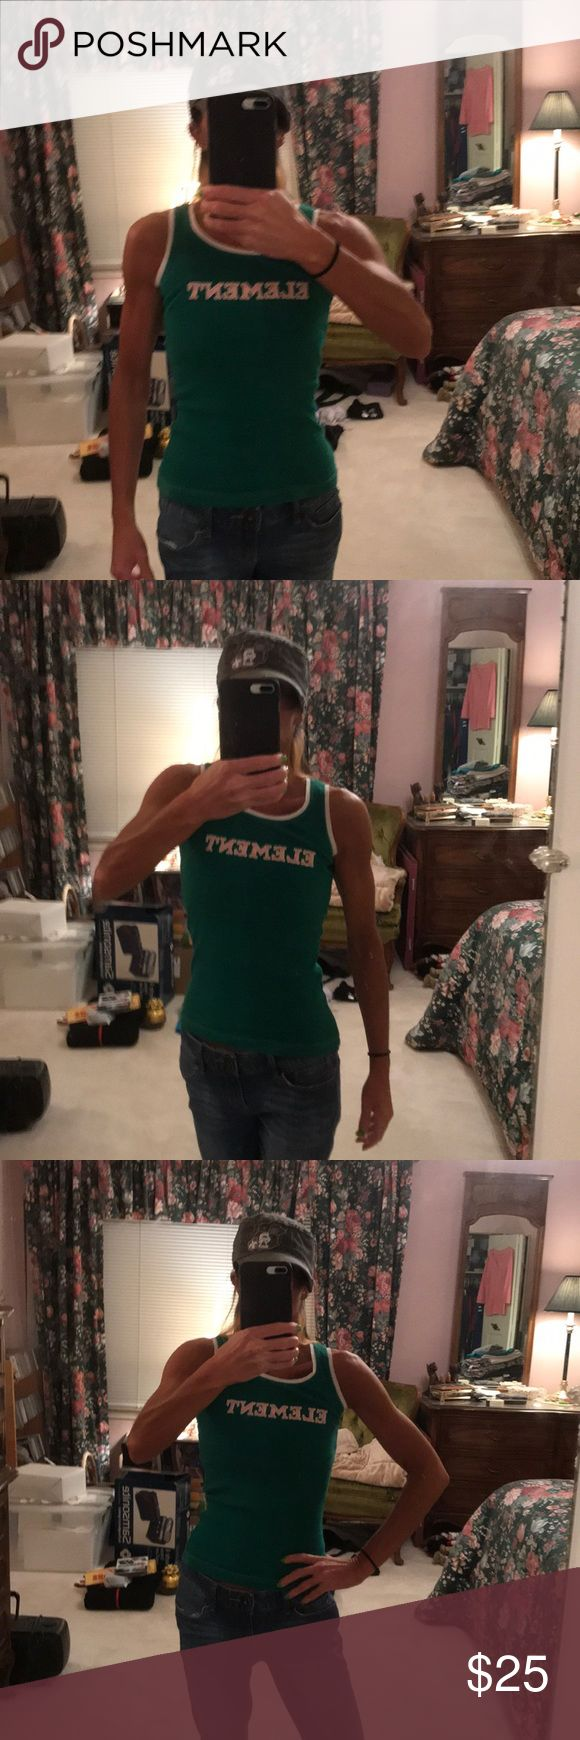 Element of surprise Like new Element tank top. Get a jump start on your spring and summer wardrobe with this fantastic tank top. No longer in circulation so definitely a great find! Free gift with purchase🎁 Element Tops Tank Tops